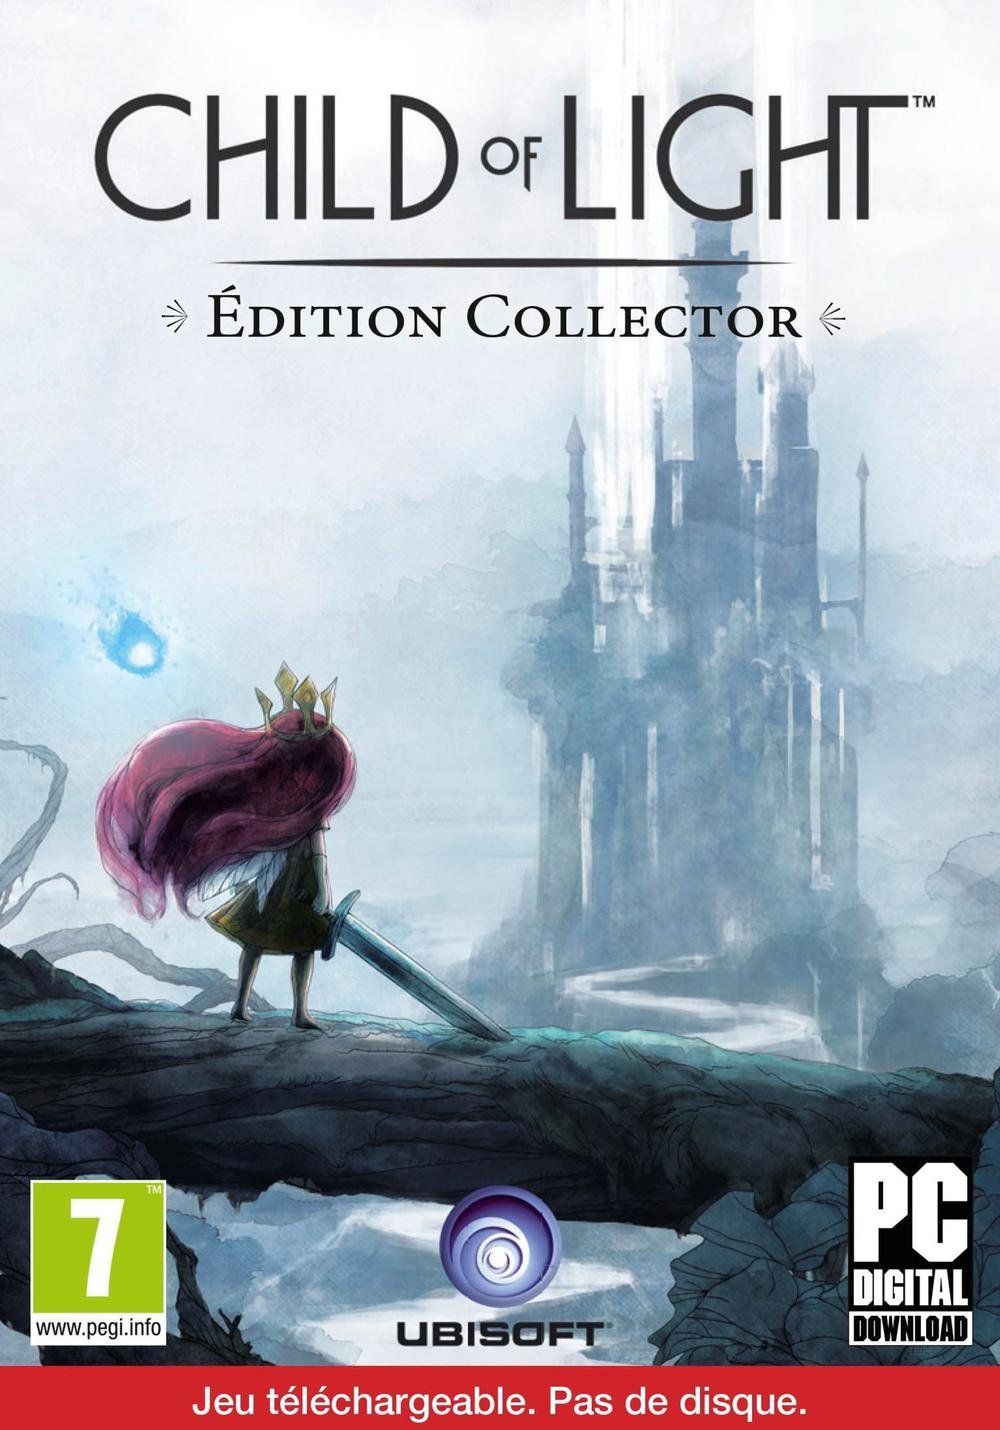 Child of light : Édition collector | Ubisoft